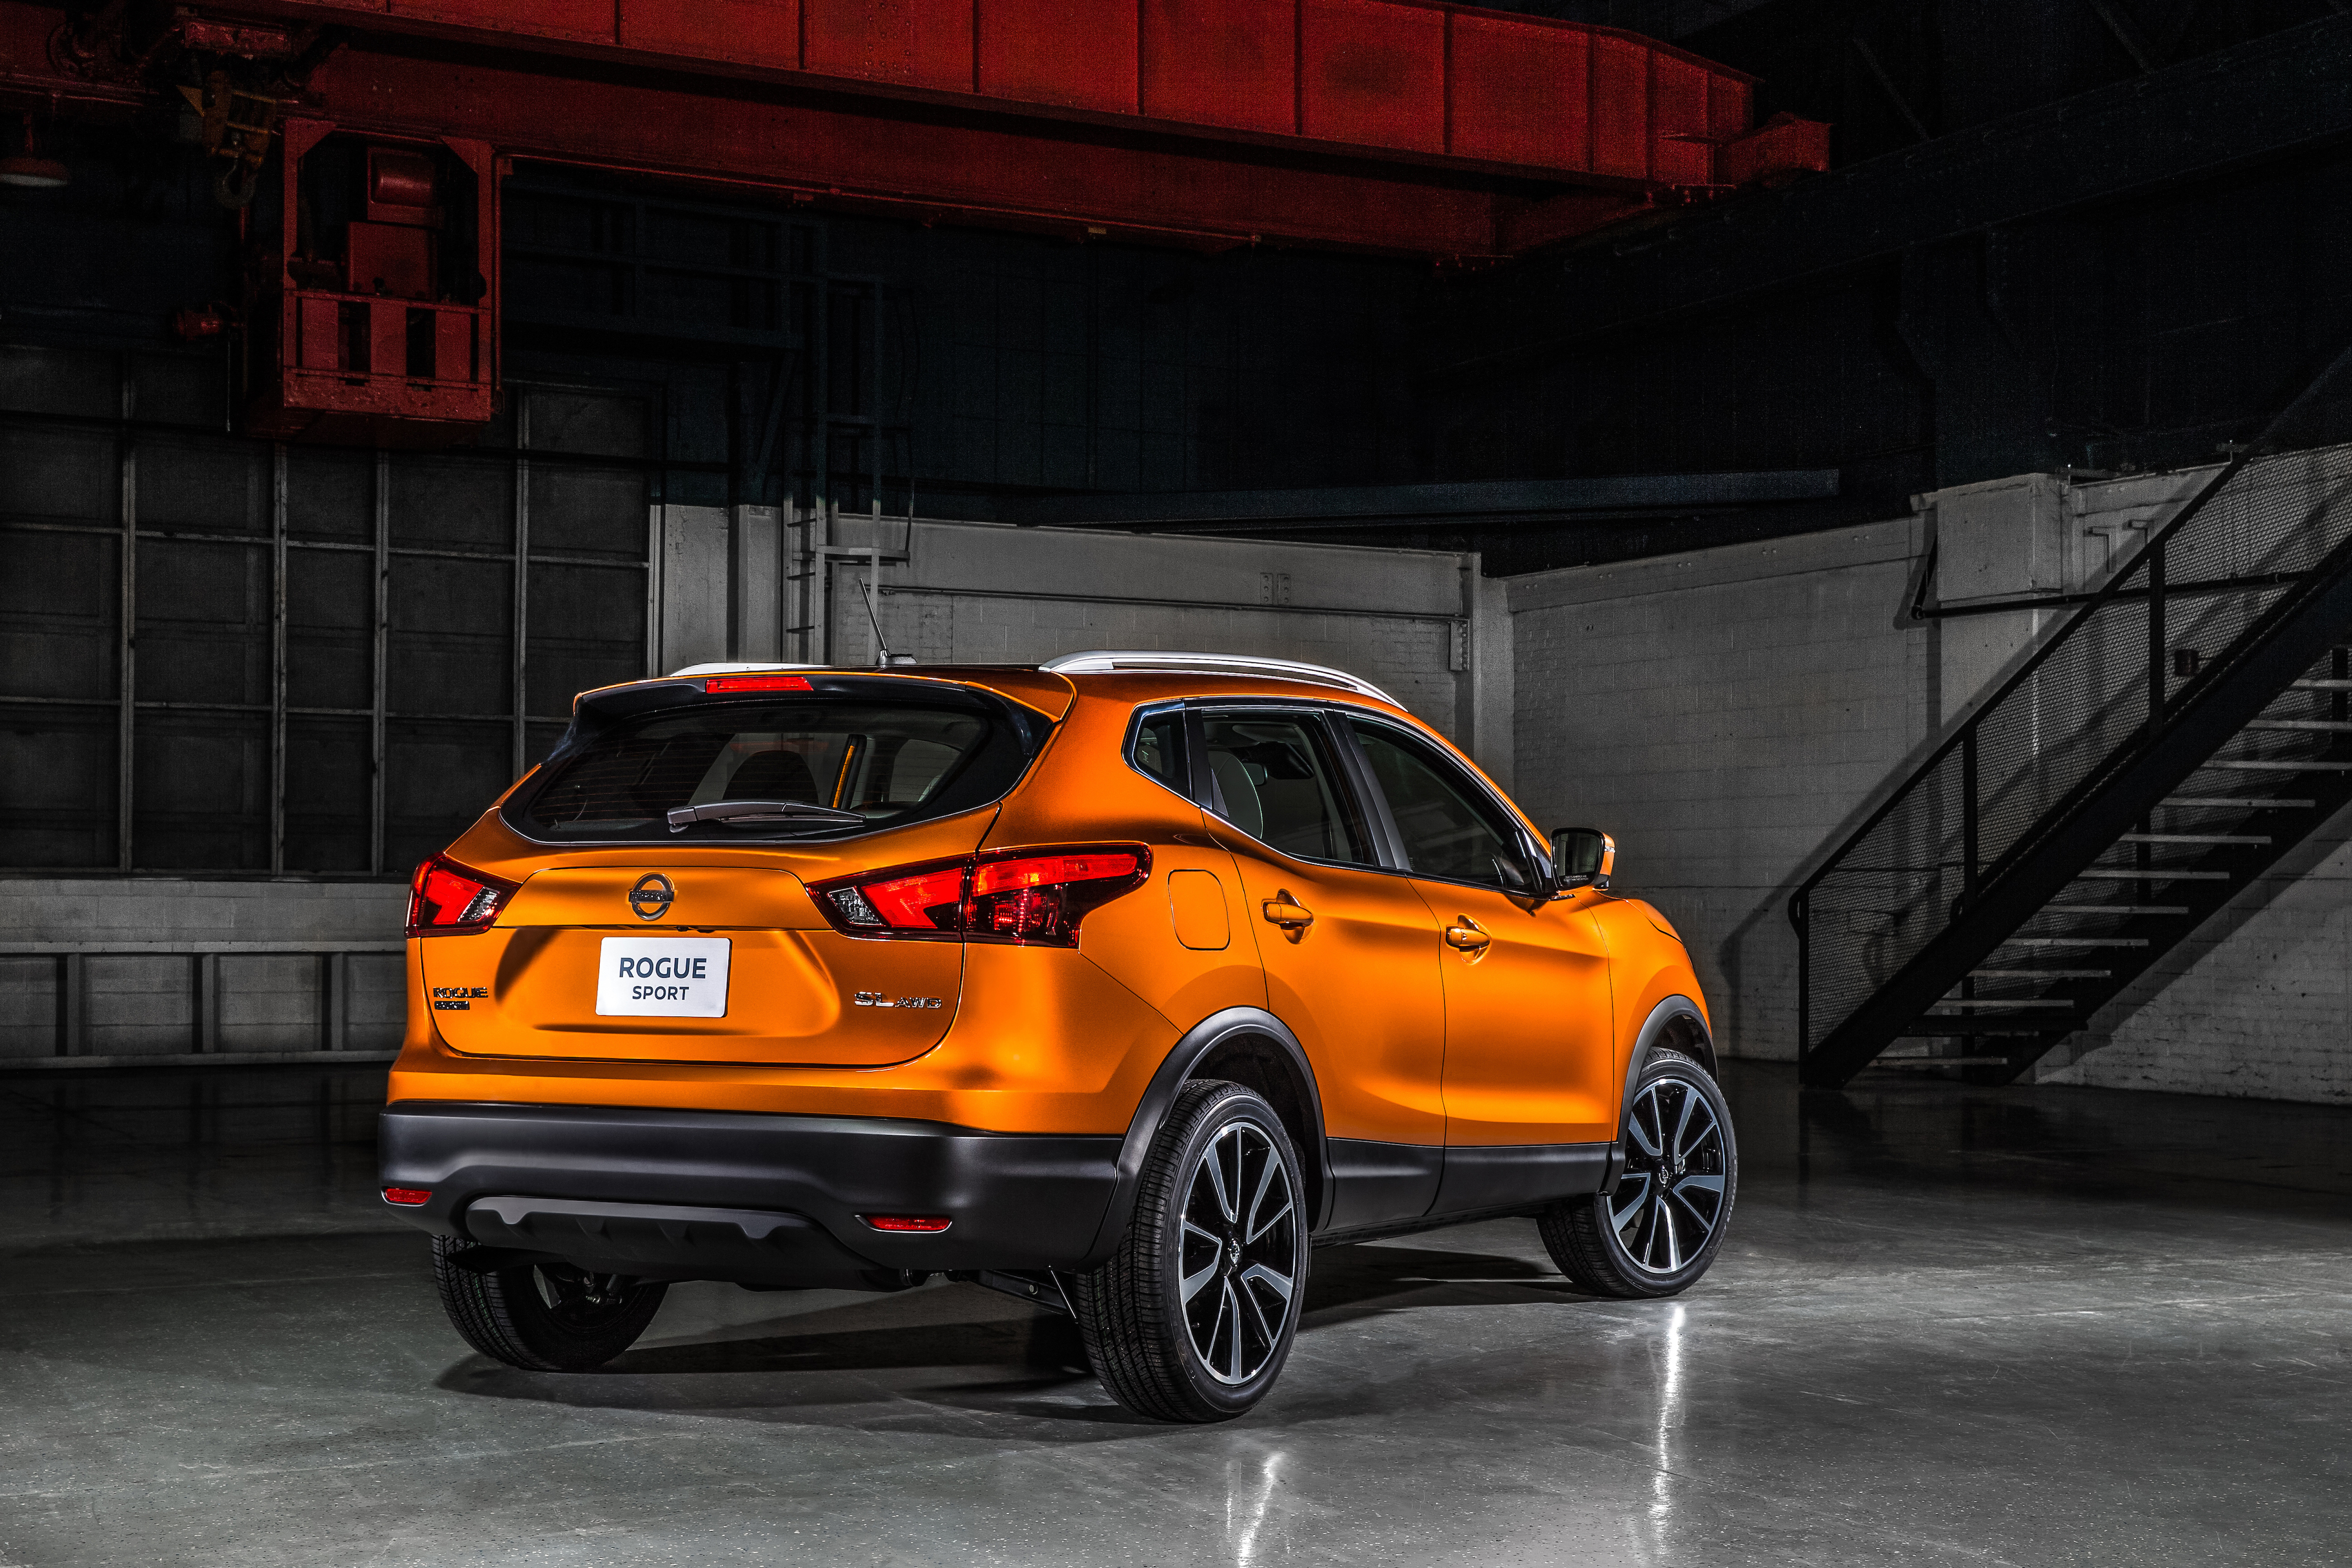 The 2017 Nissan Rogue Sport is more than an extension of the popular Rogue, which accelerated past the Nissan Altima sedan in calendar year 2016 to become Nissanís number one selling model. While sharing the Rogue name, platform and numerous advanced safety and security features, Rogue Sport stands on its own as a stylish, nimble, fun-to-drive and affordable compact SUV.